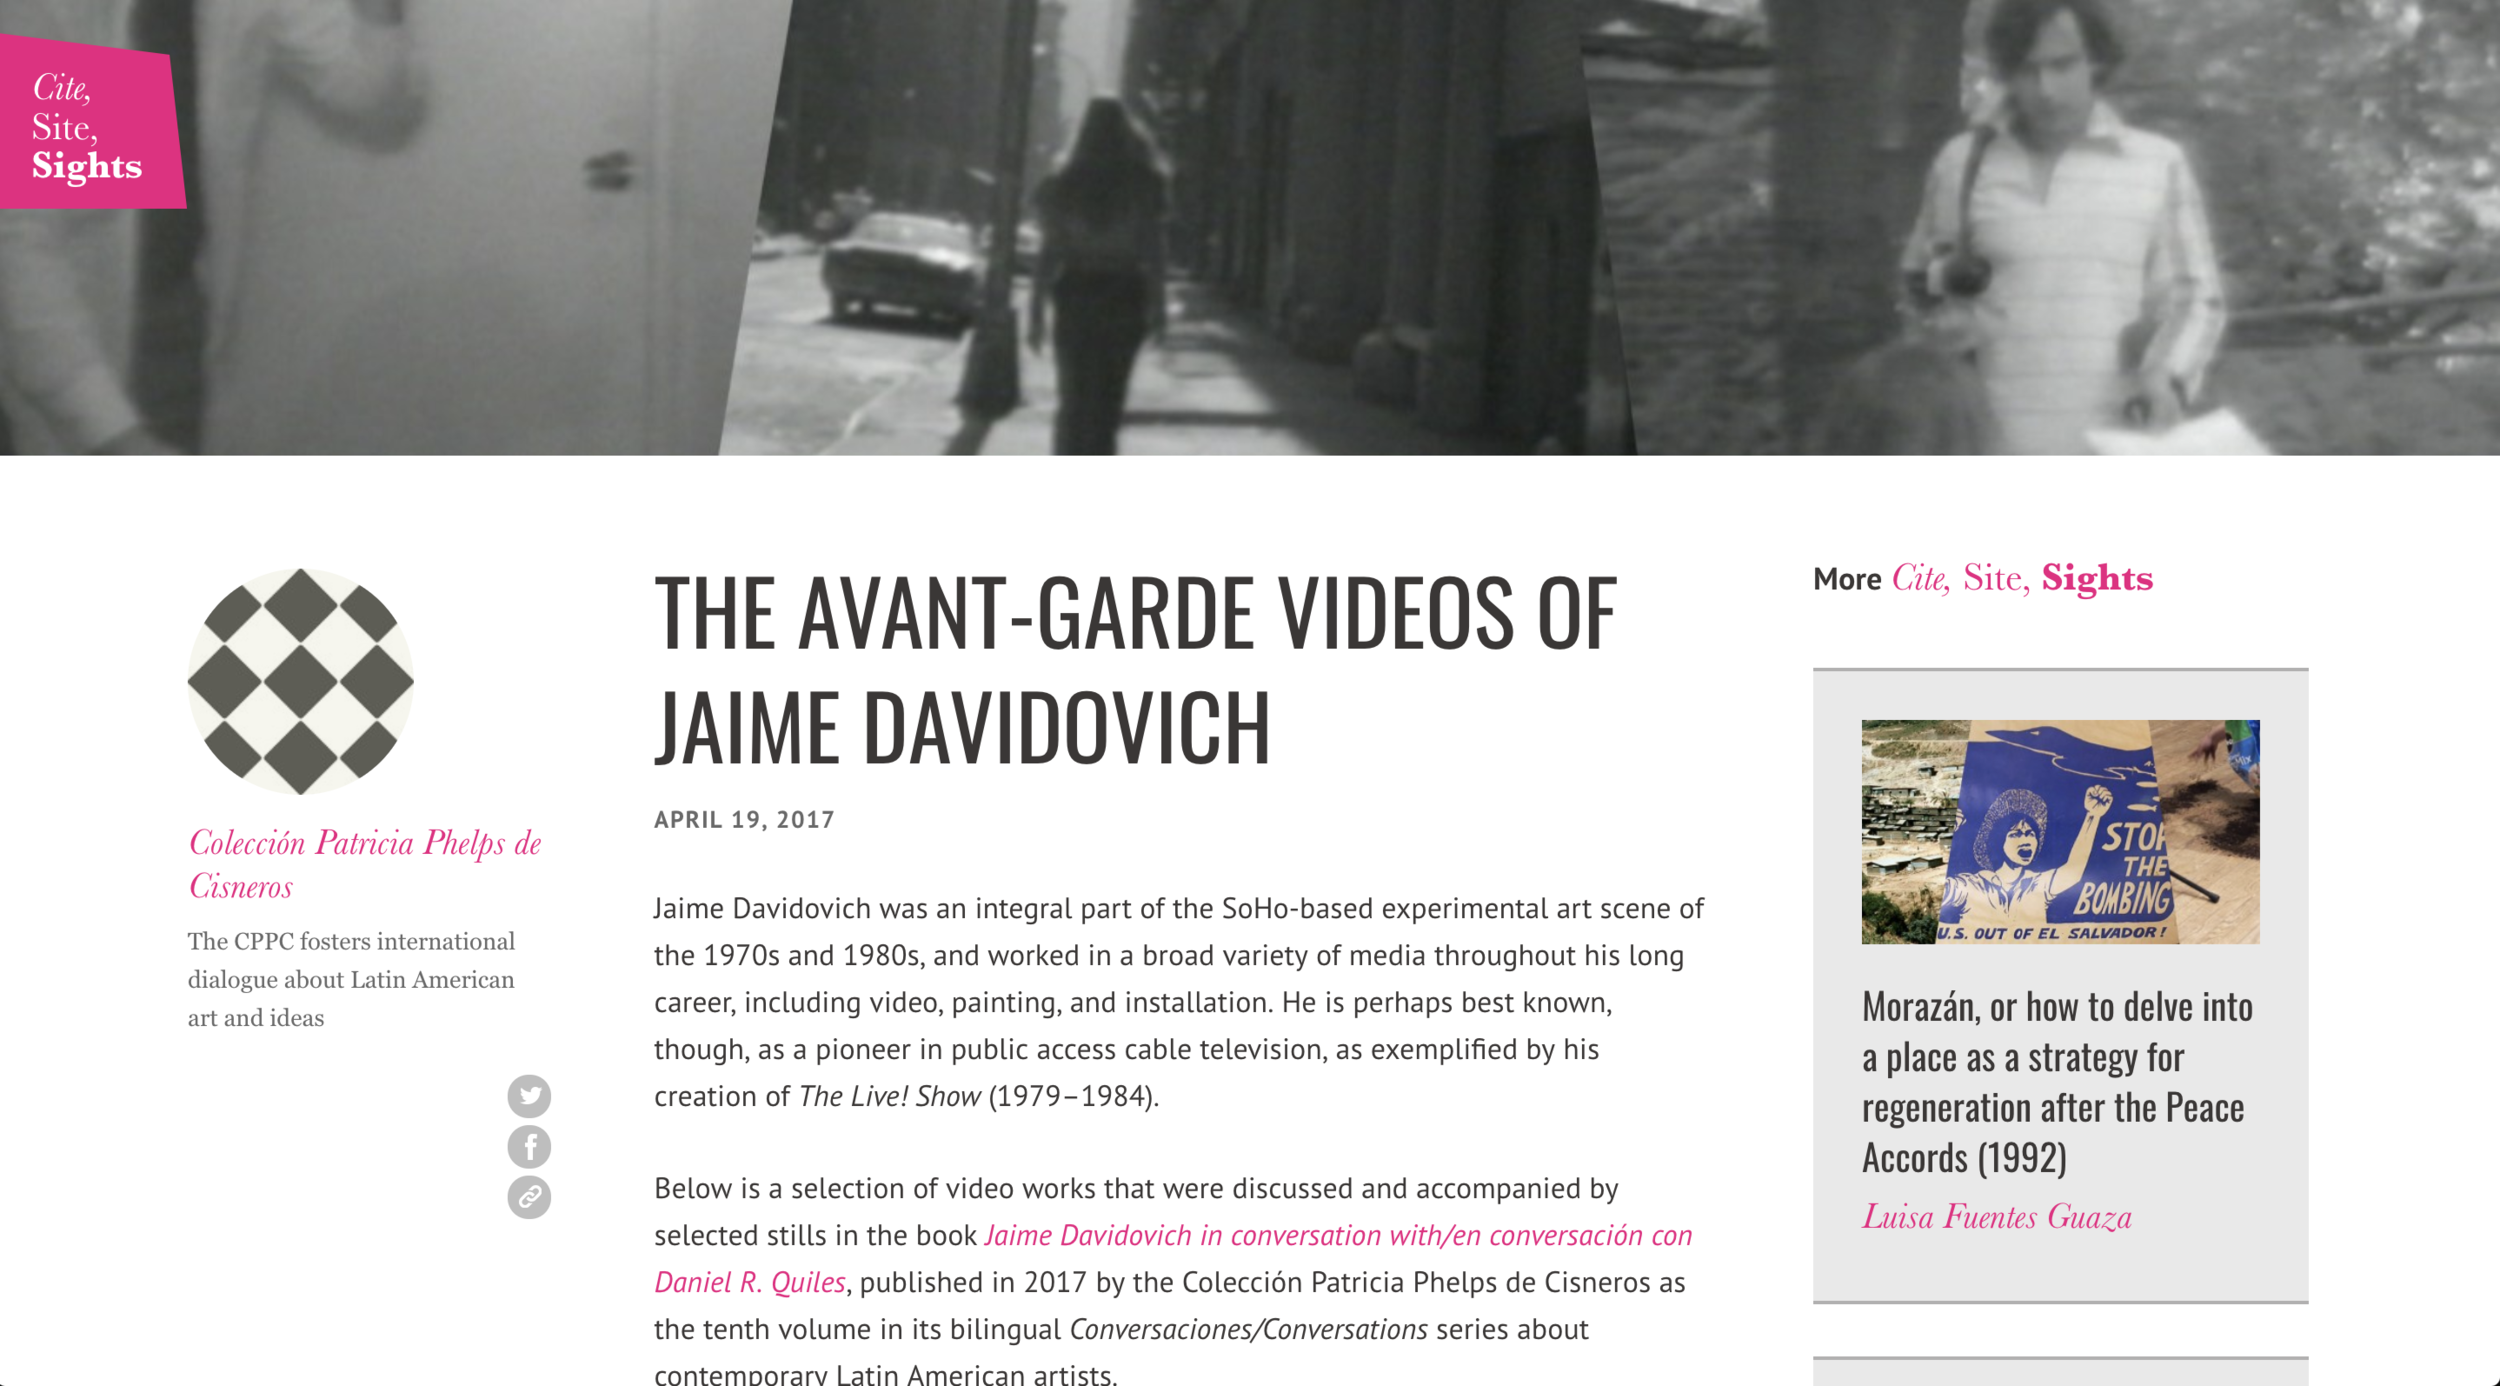 "THE AVANT-GARDE VIDEOS OF JAIME DAVIDOVICH - Colección Cisneros - April 19th, 2017""Jaime Davidovich was an integral part of the SoHo-based experimental art scene of the 1970s and 1980s, and worked in a broad variety of media throughout his long career, including video, painting, and installation. He is perhaps best known, though, as a pioneer in public access cable television, as exemplified by his creation of The Live! Show (1979–1984)."""